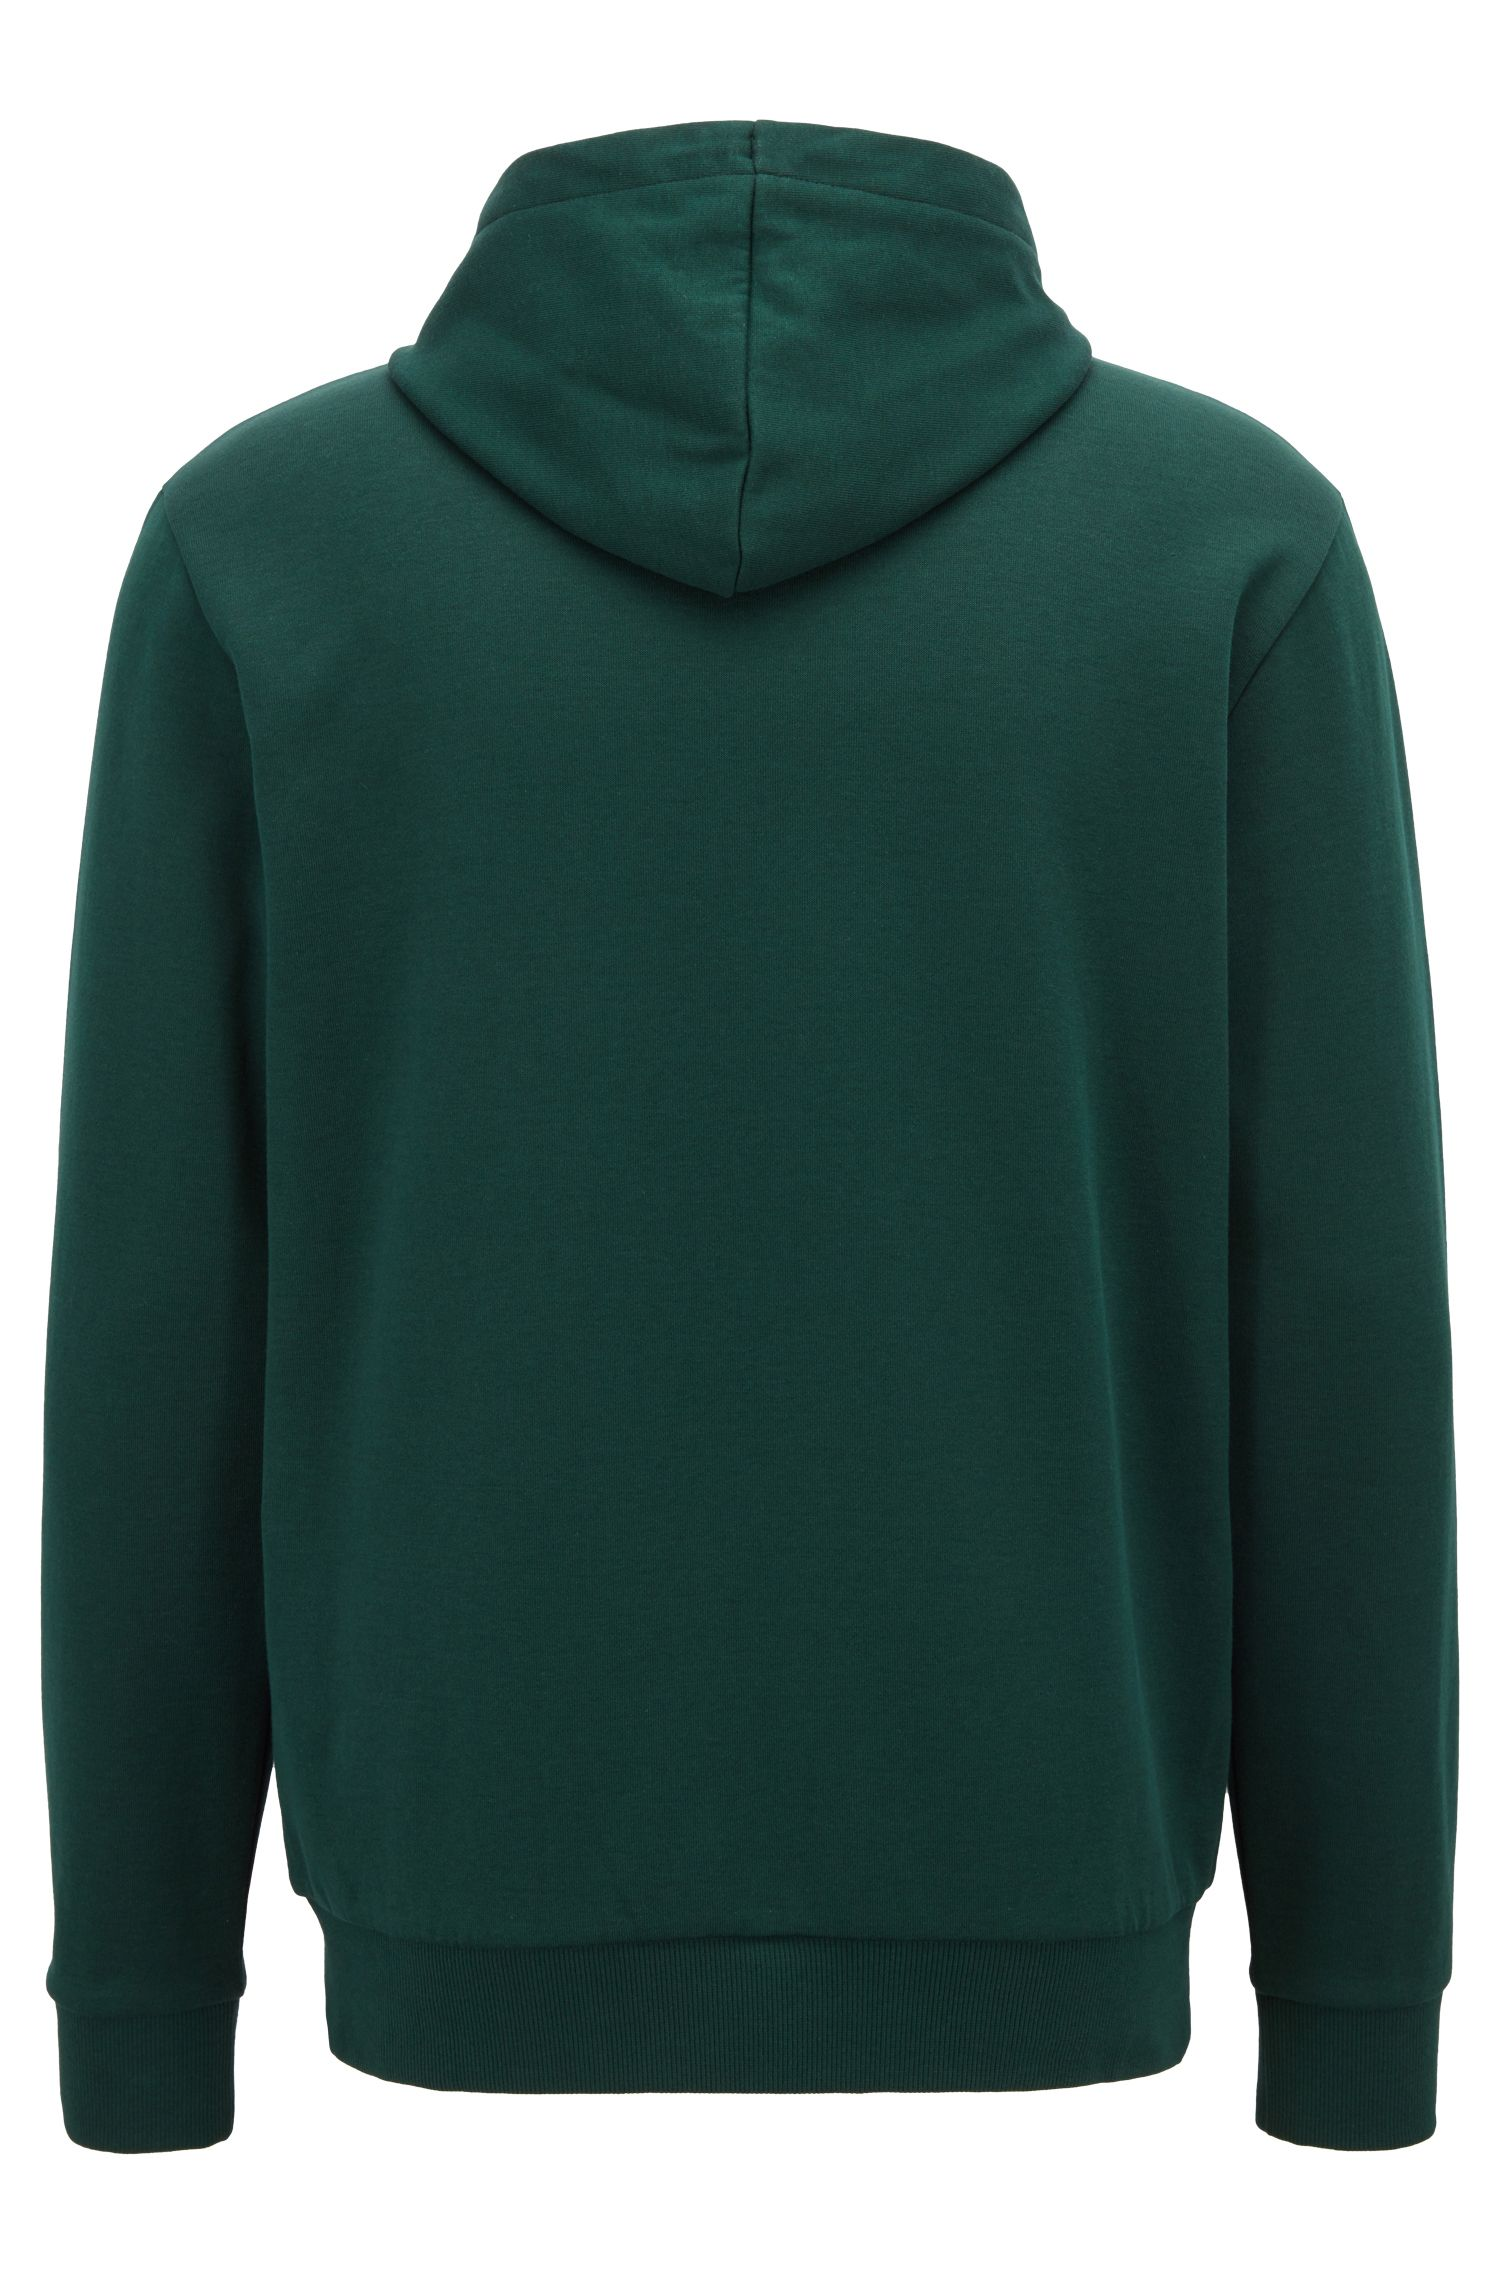 Double-faced hooded sweatshirt with embossed logo, Green